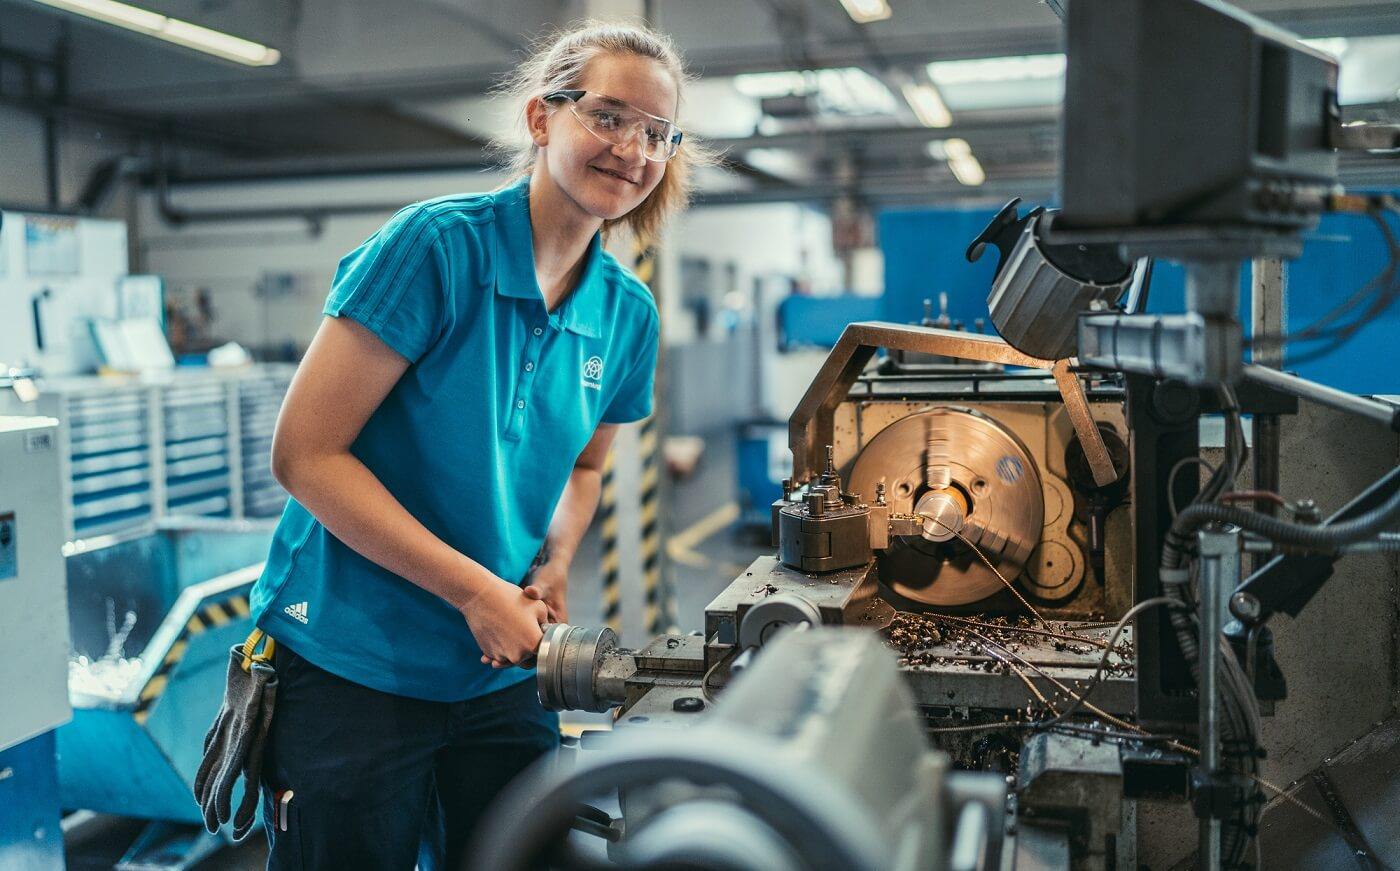 Janina Jäger, machining mechanic apprentice, smiling while working at a machine